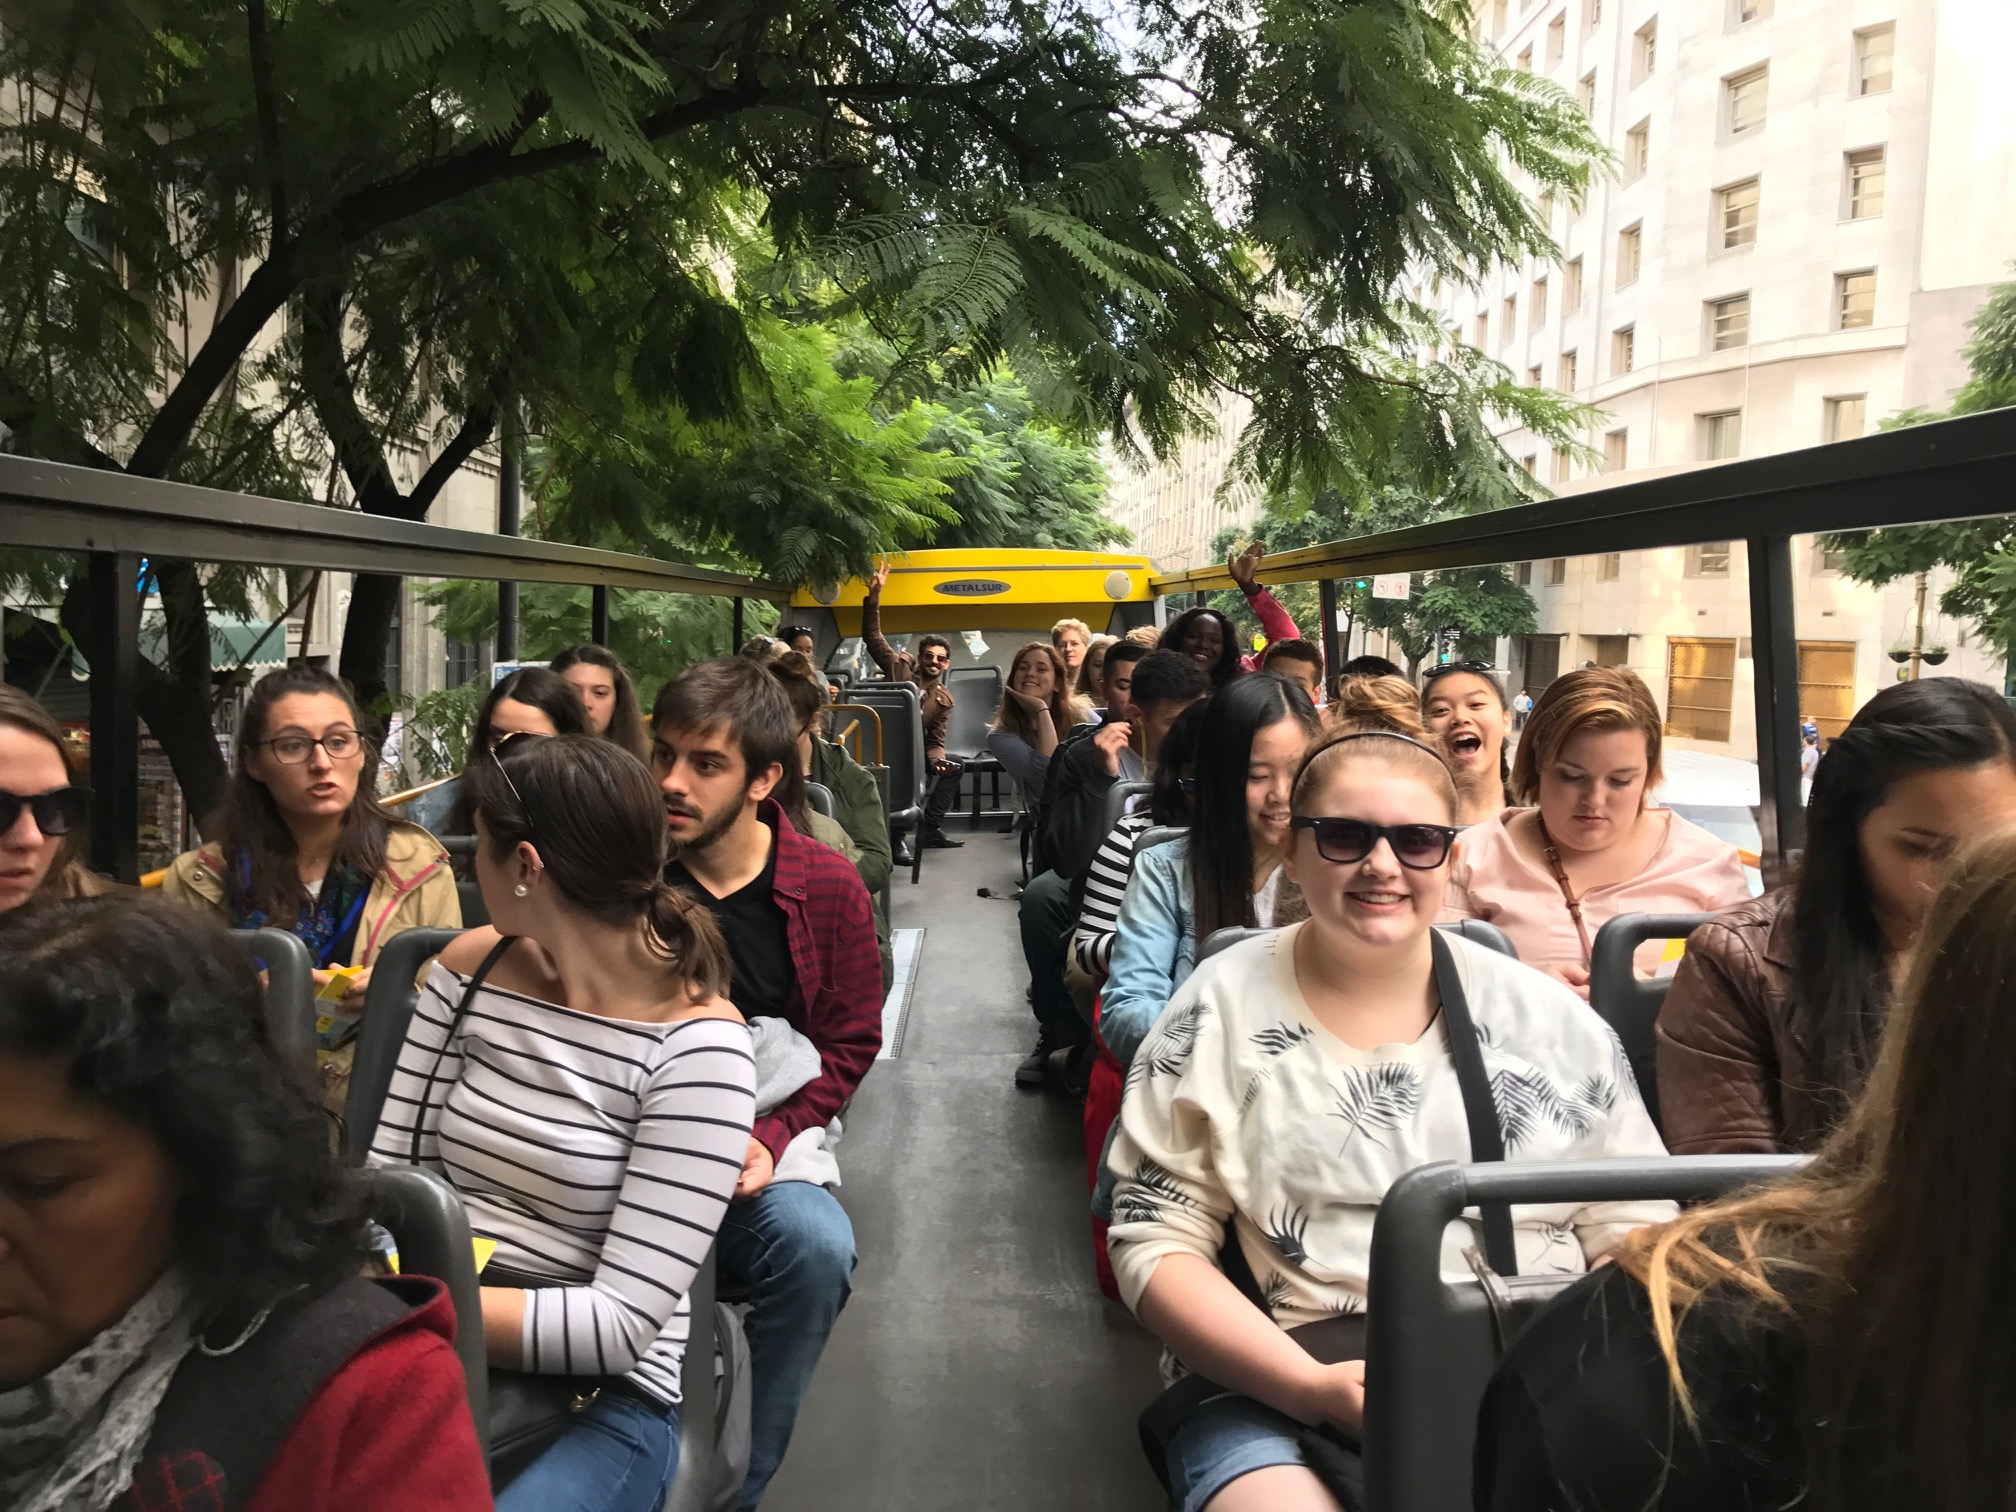 CAPAStudyAbroad_BuenosAires_Summer2017_From Sally Rountree Arrival 2.jpg